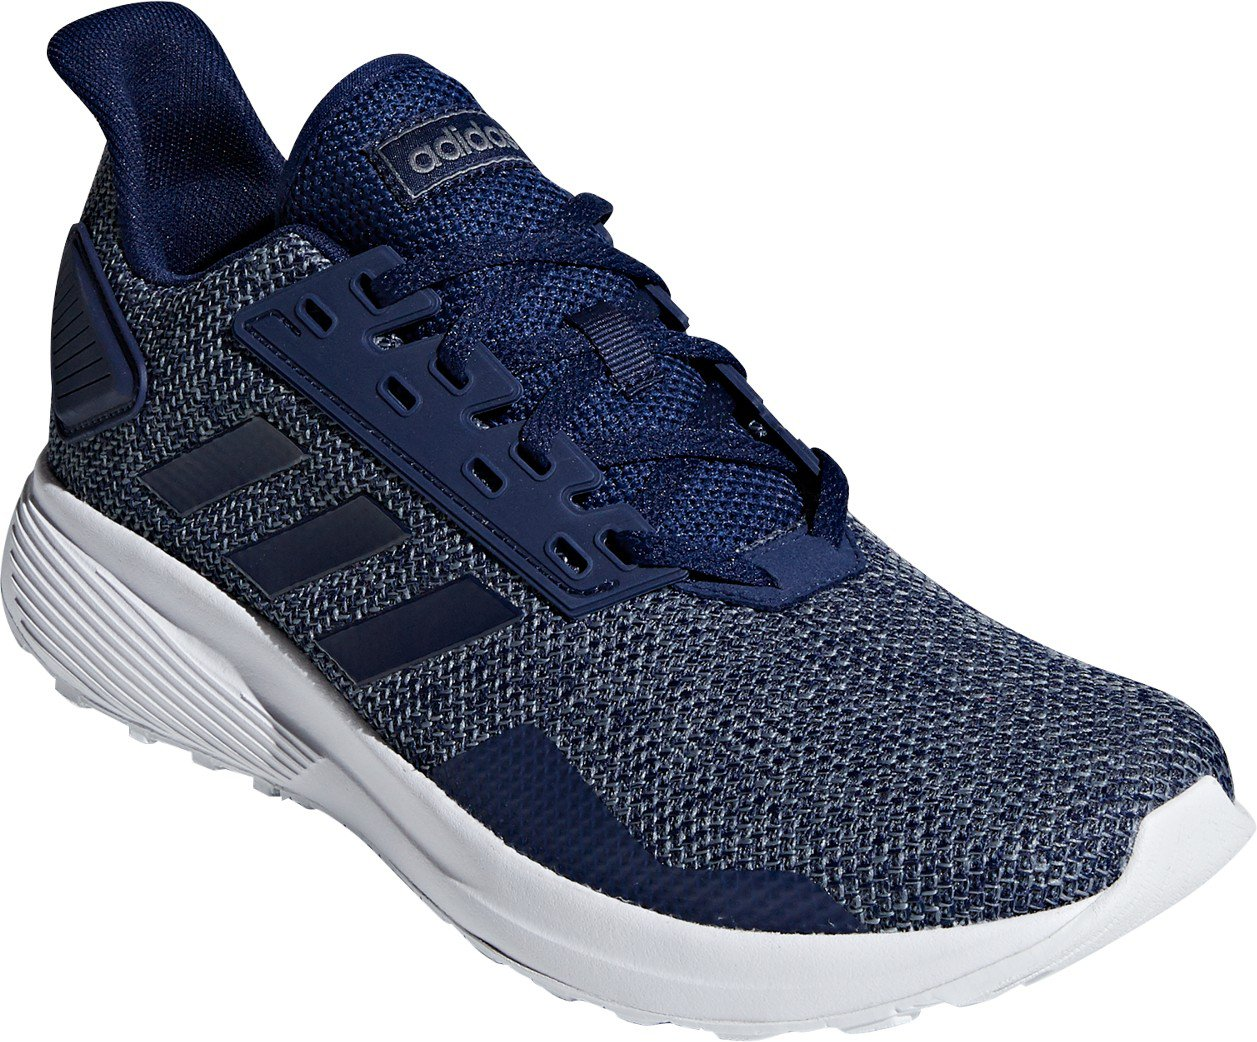 hot sale online 2ba06 9473d Display product reviews for adidas Men s Duramo 9 Running Shoes